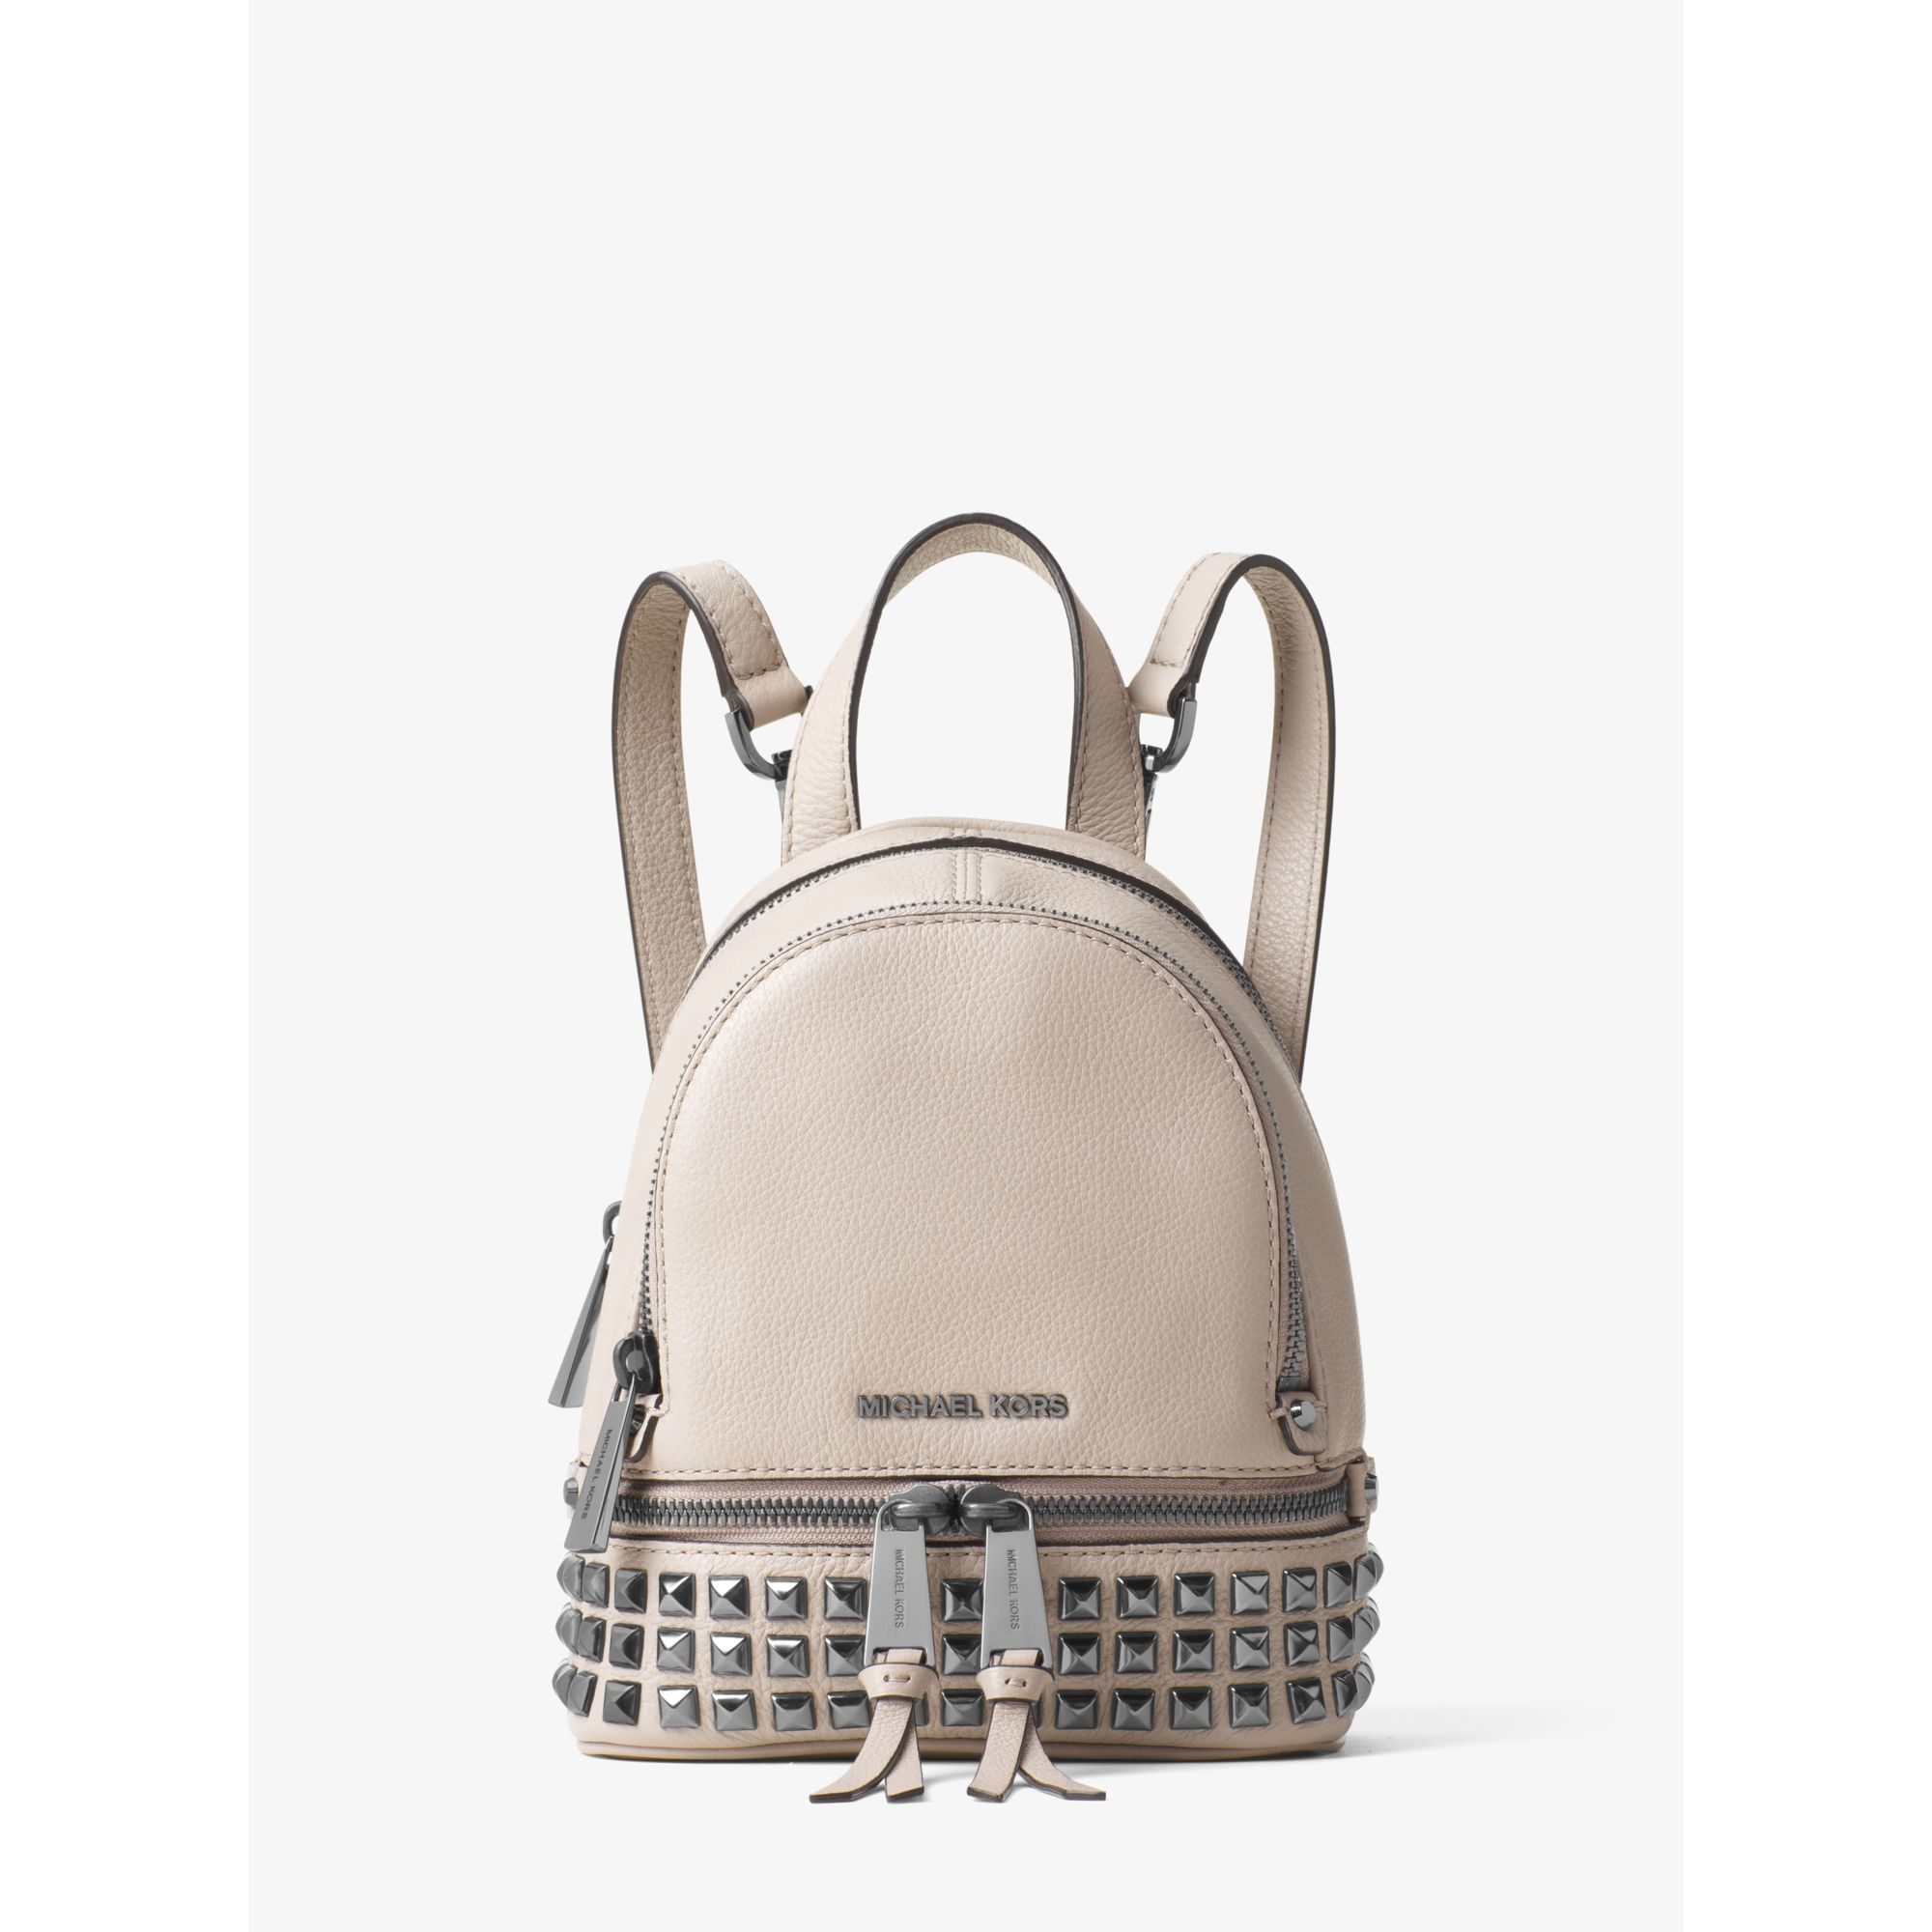 Lyst Michael Kors Rhea Extra small Studded Leather Backpack in Gray